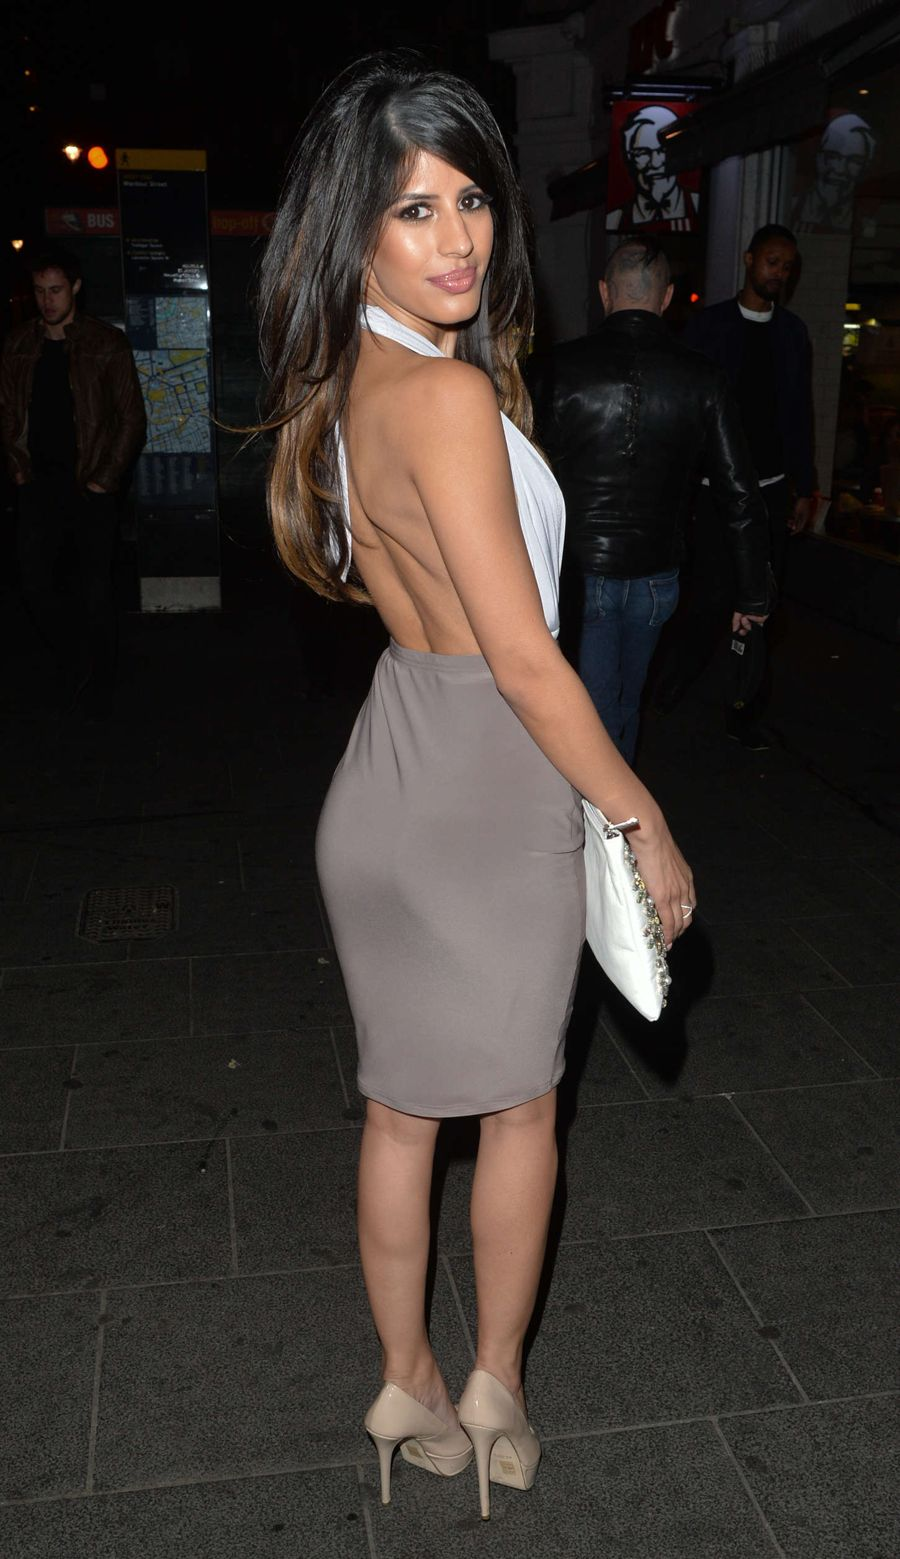 Jasmin Walia at Cafe de Paris in London